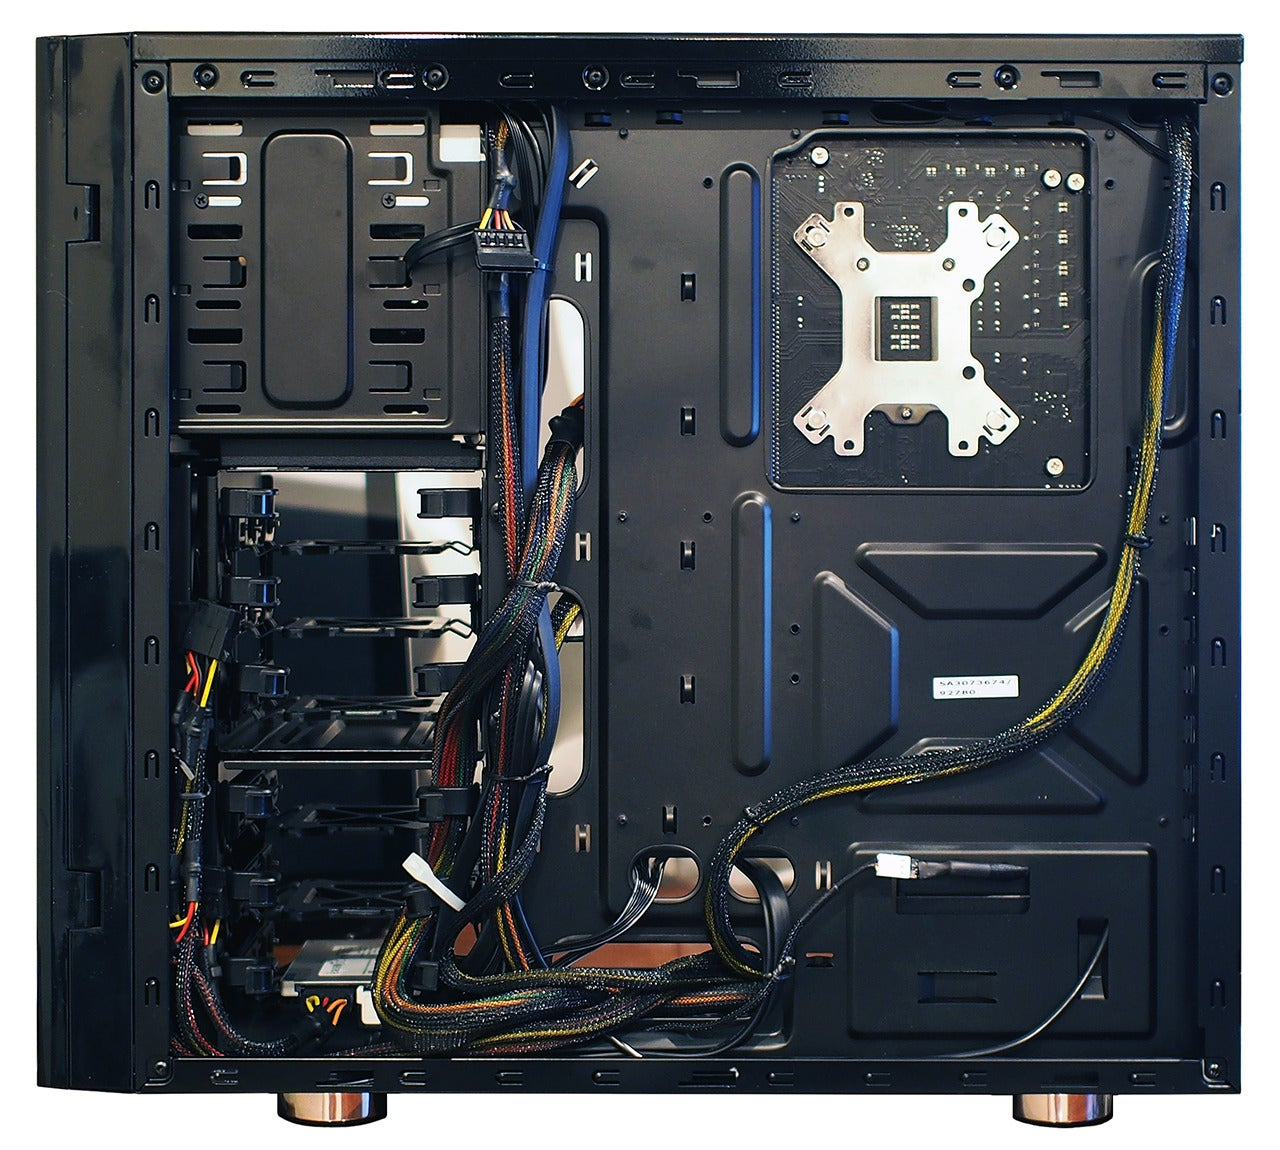 Uncategorized Computer Cable Management Tips how to organize cables in your pc pcworld a behind the motherboard glimpse at cleanly cabled system